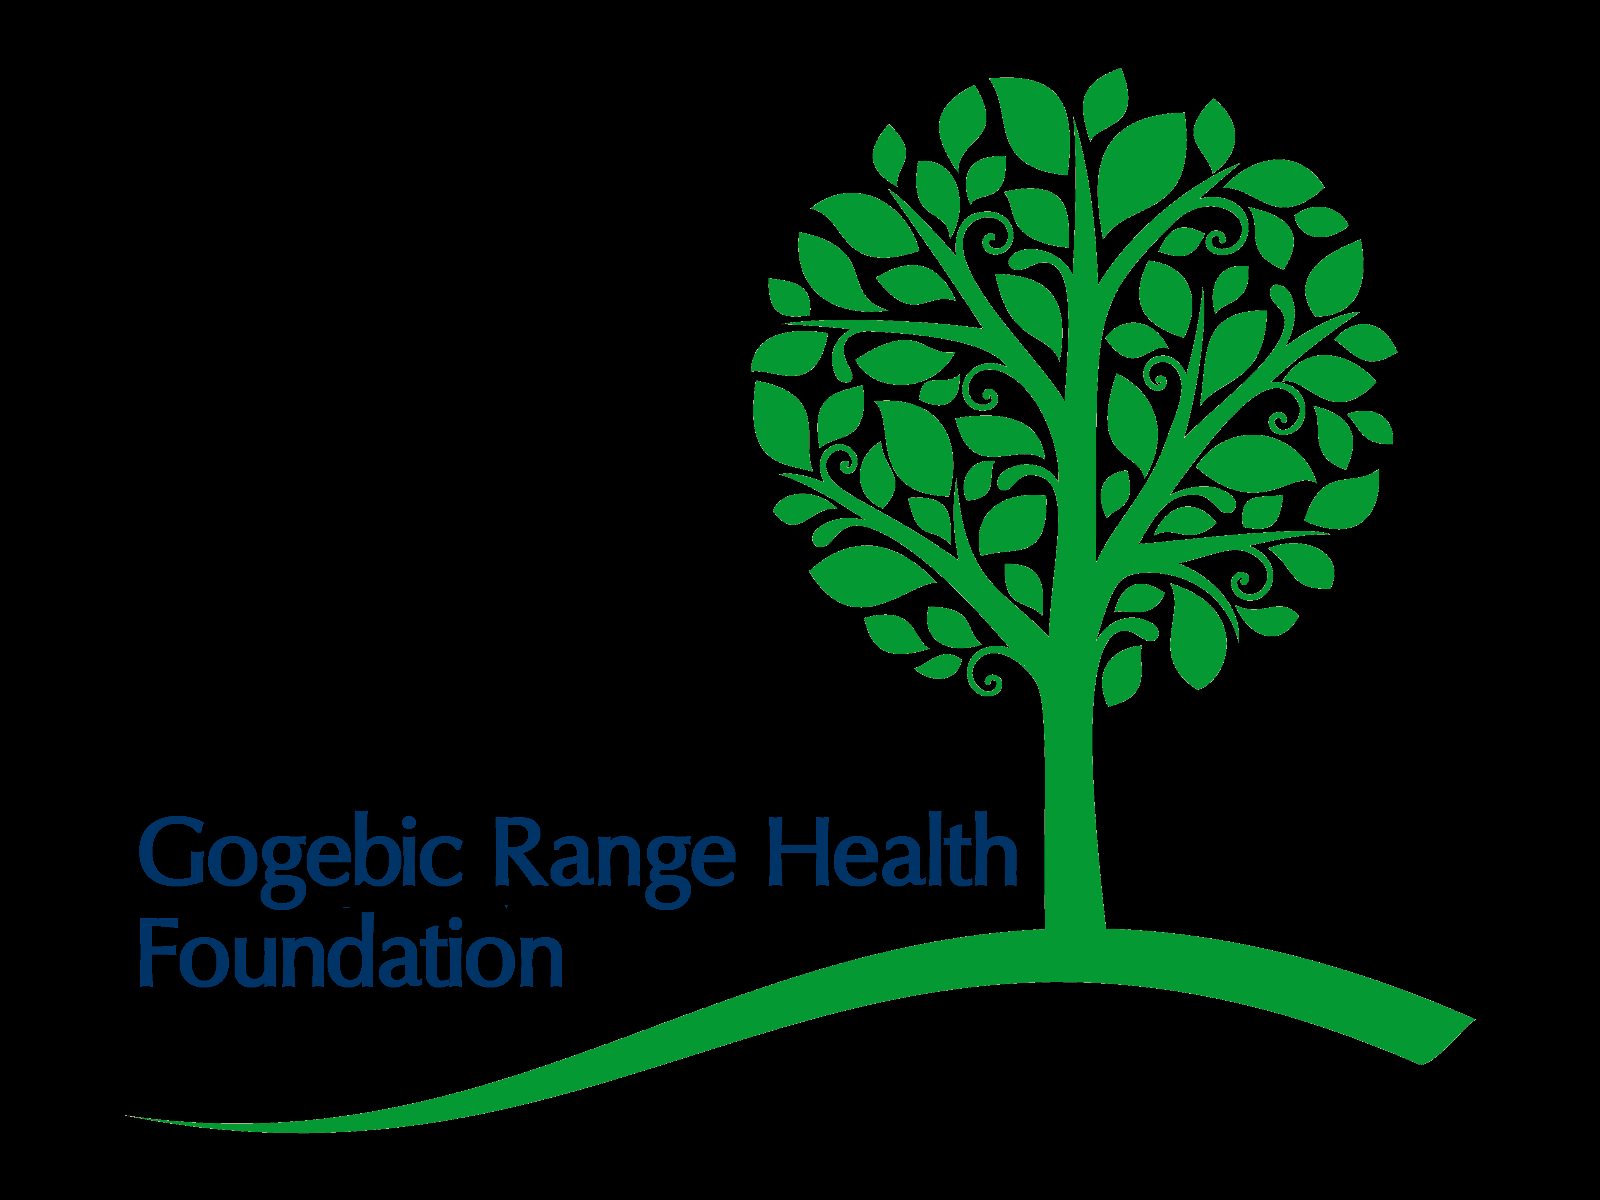 Gogebic Range Health Foundation